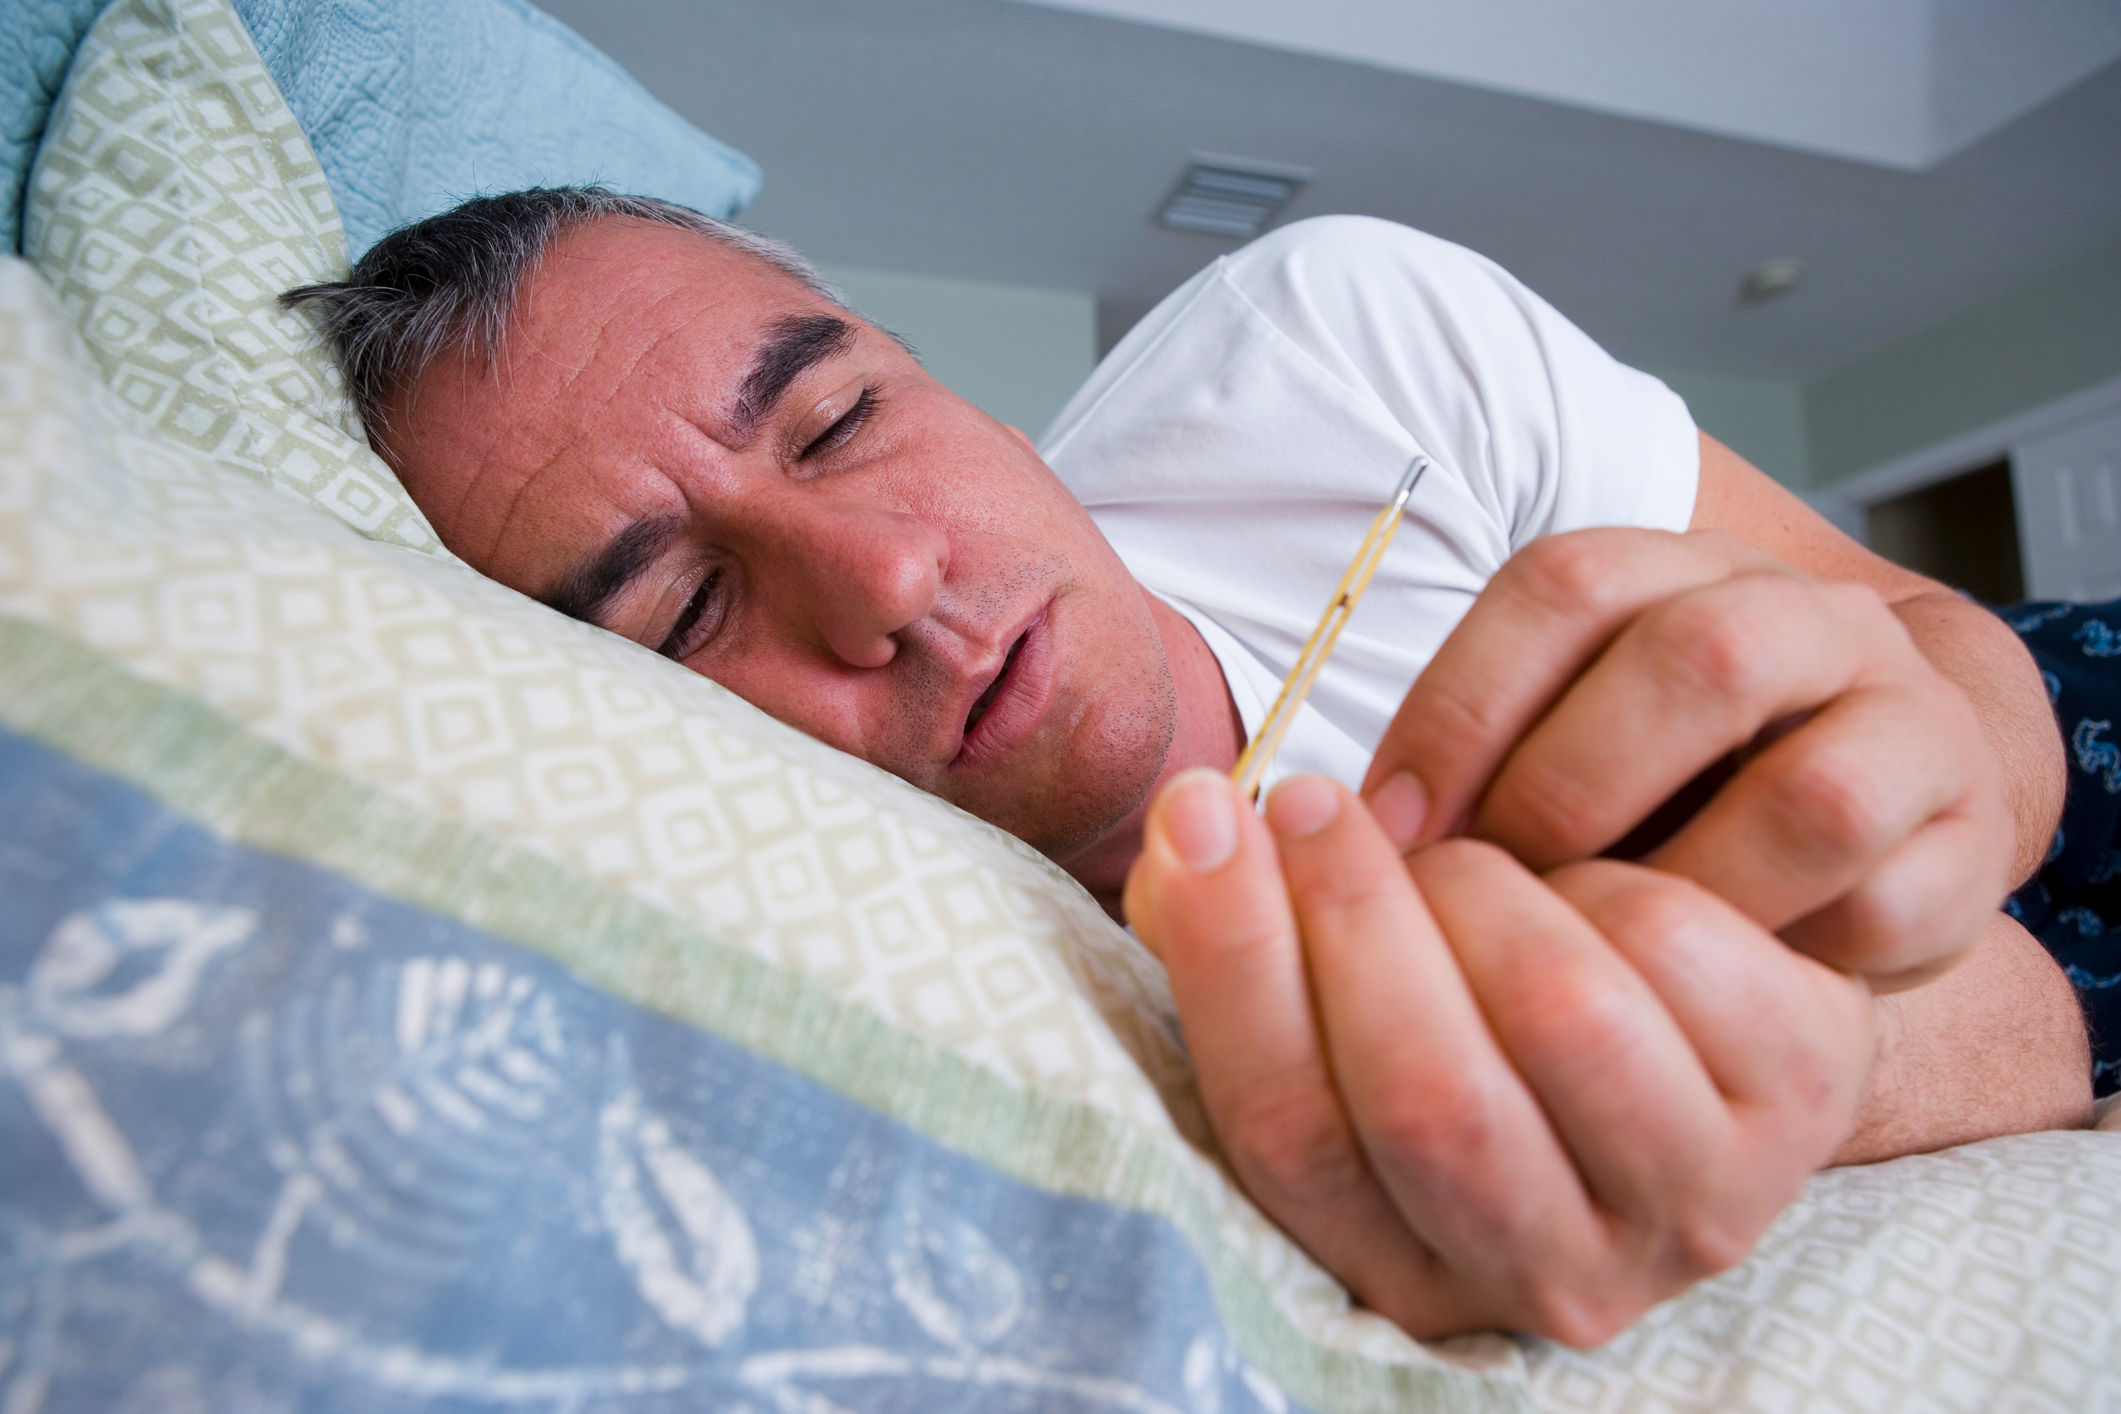 Sick man in bed holding thermometer. (Juan Silva via Getty Images)